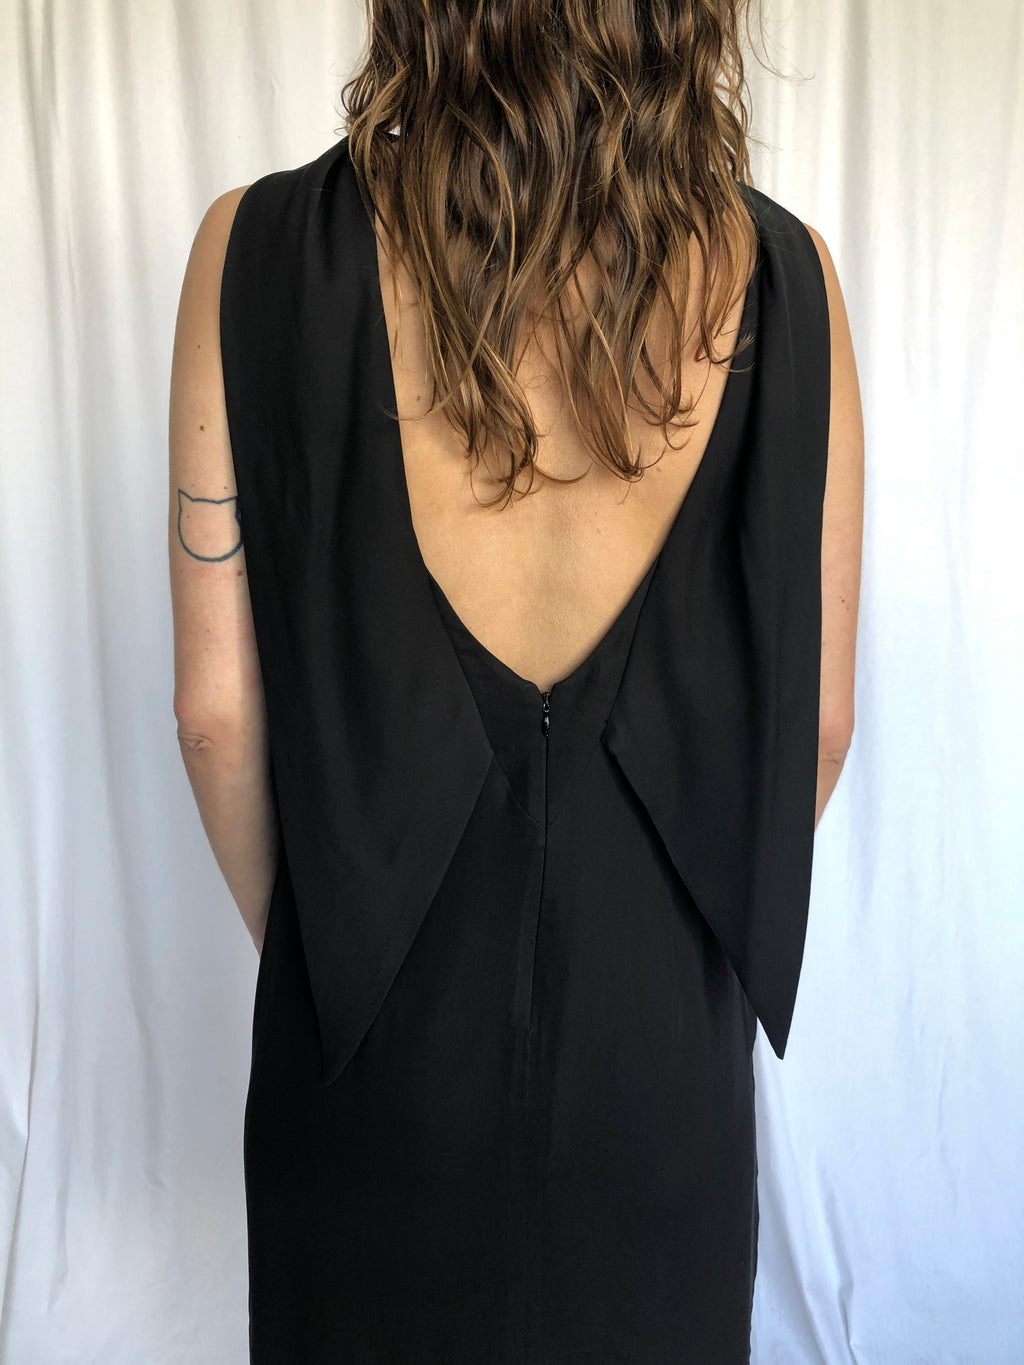 Armani Vintage Black Sexy Back Chic Elegant Dress 6 S